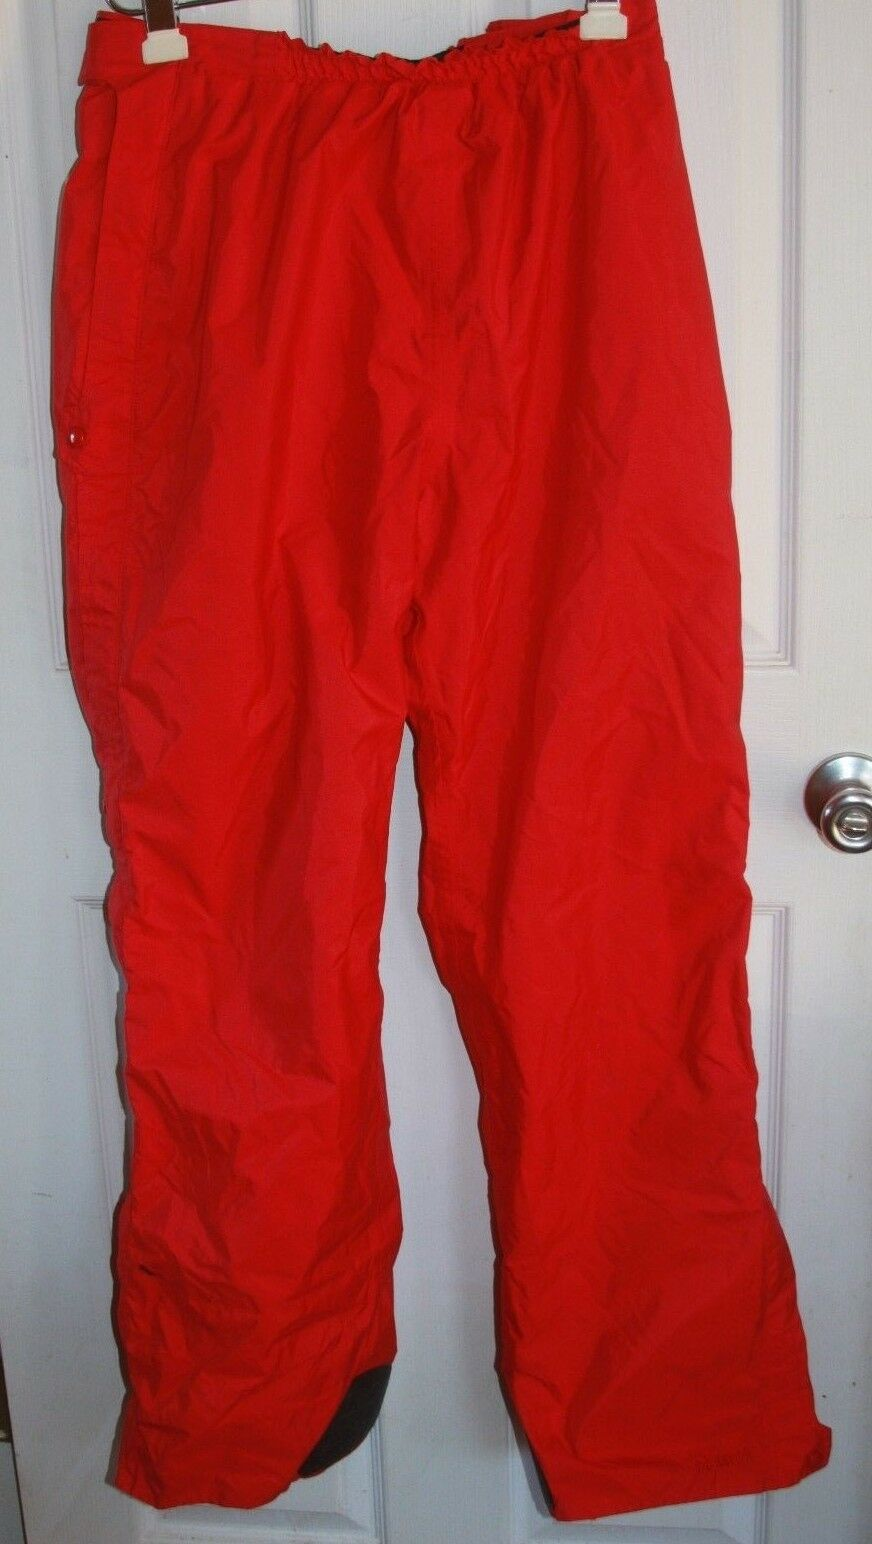 Marmot Ski/Snow Pants Womens XL Gore-Tex Red Full Zippered Legs